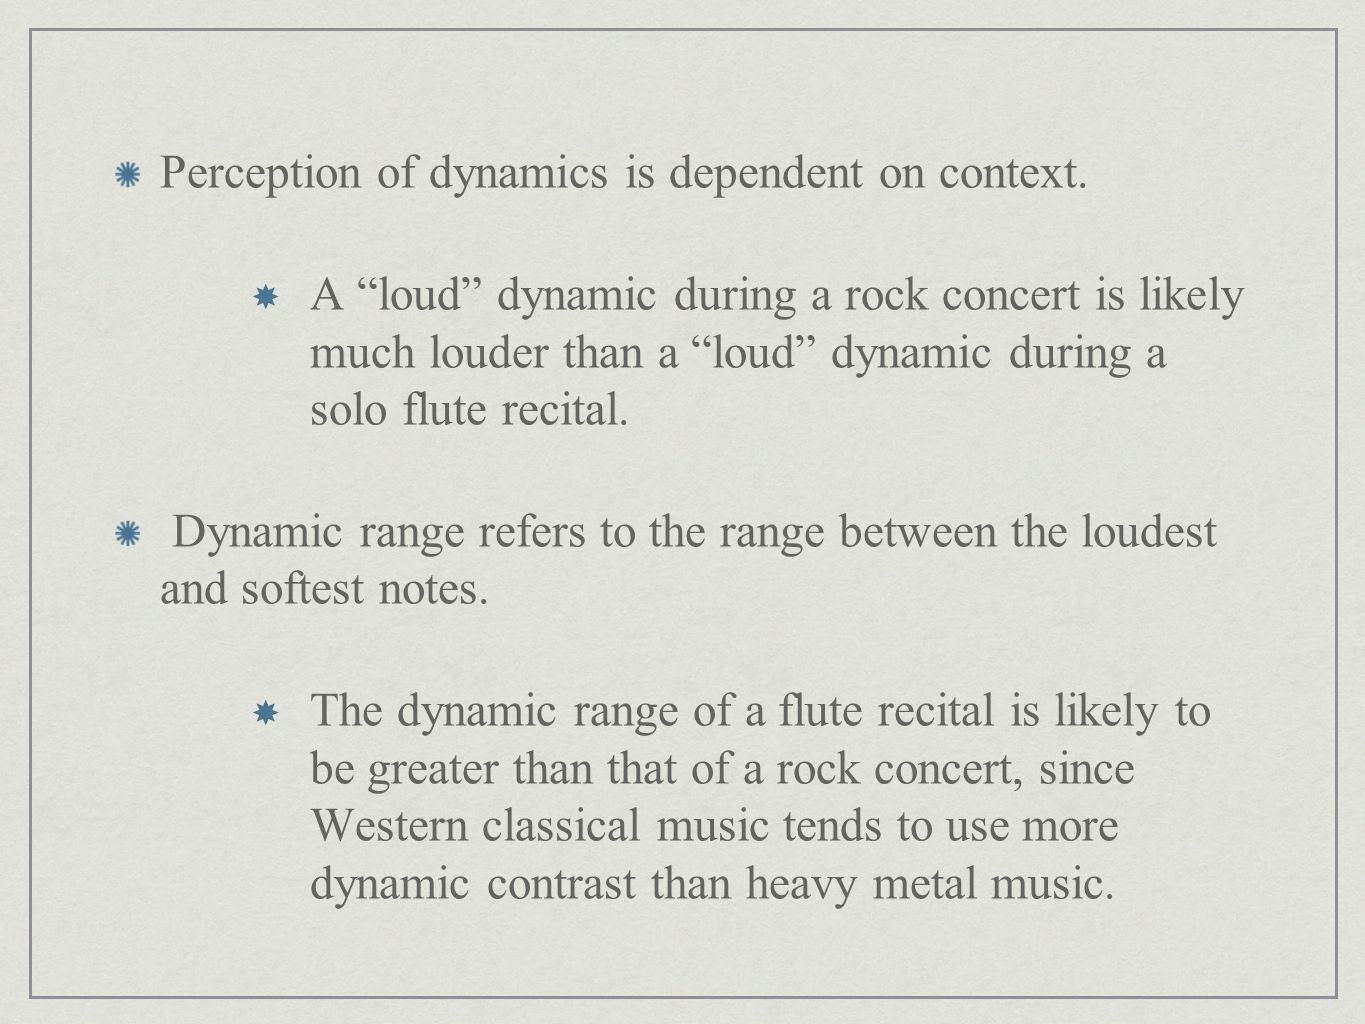 Perception of dynamics is dependent on context.